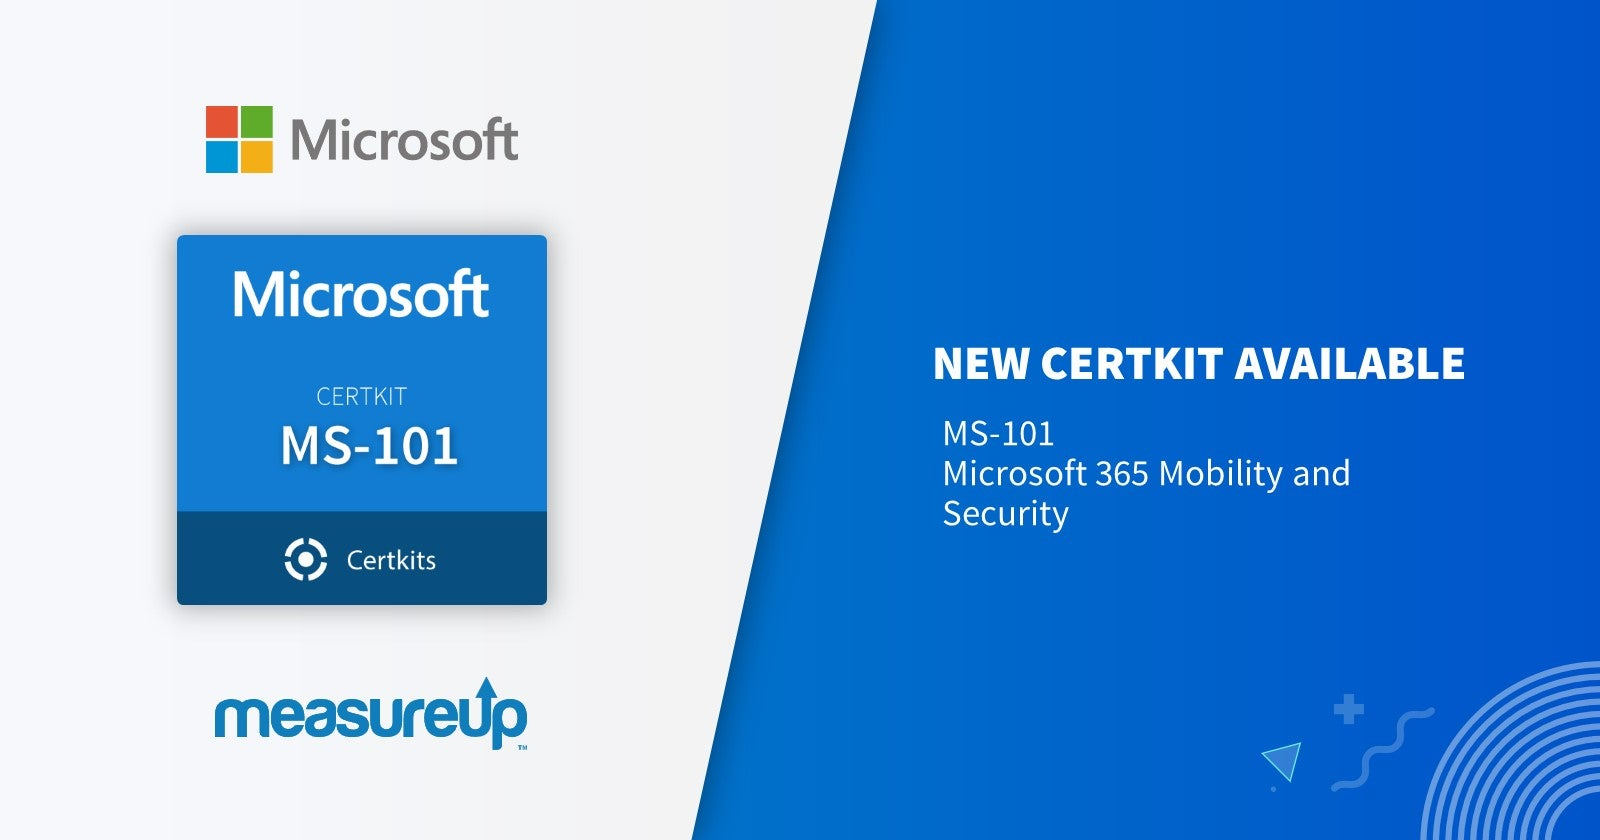 New Cert Kit MS-101: Microsoft 365 Mobility and Security